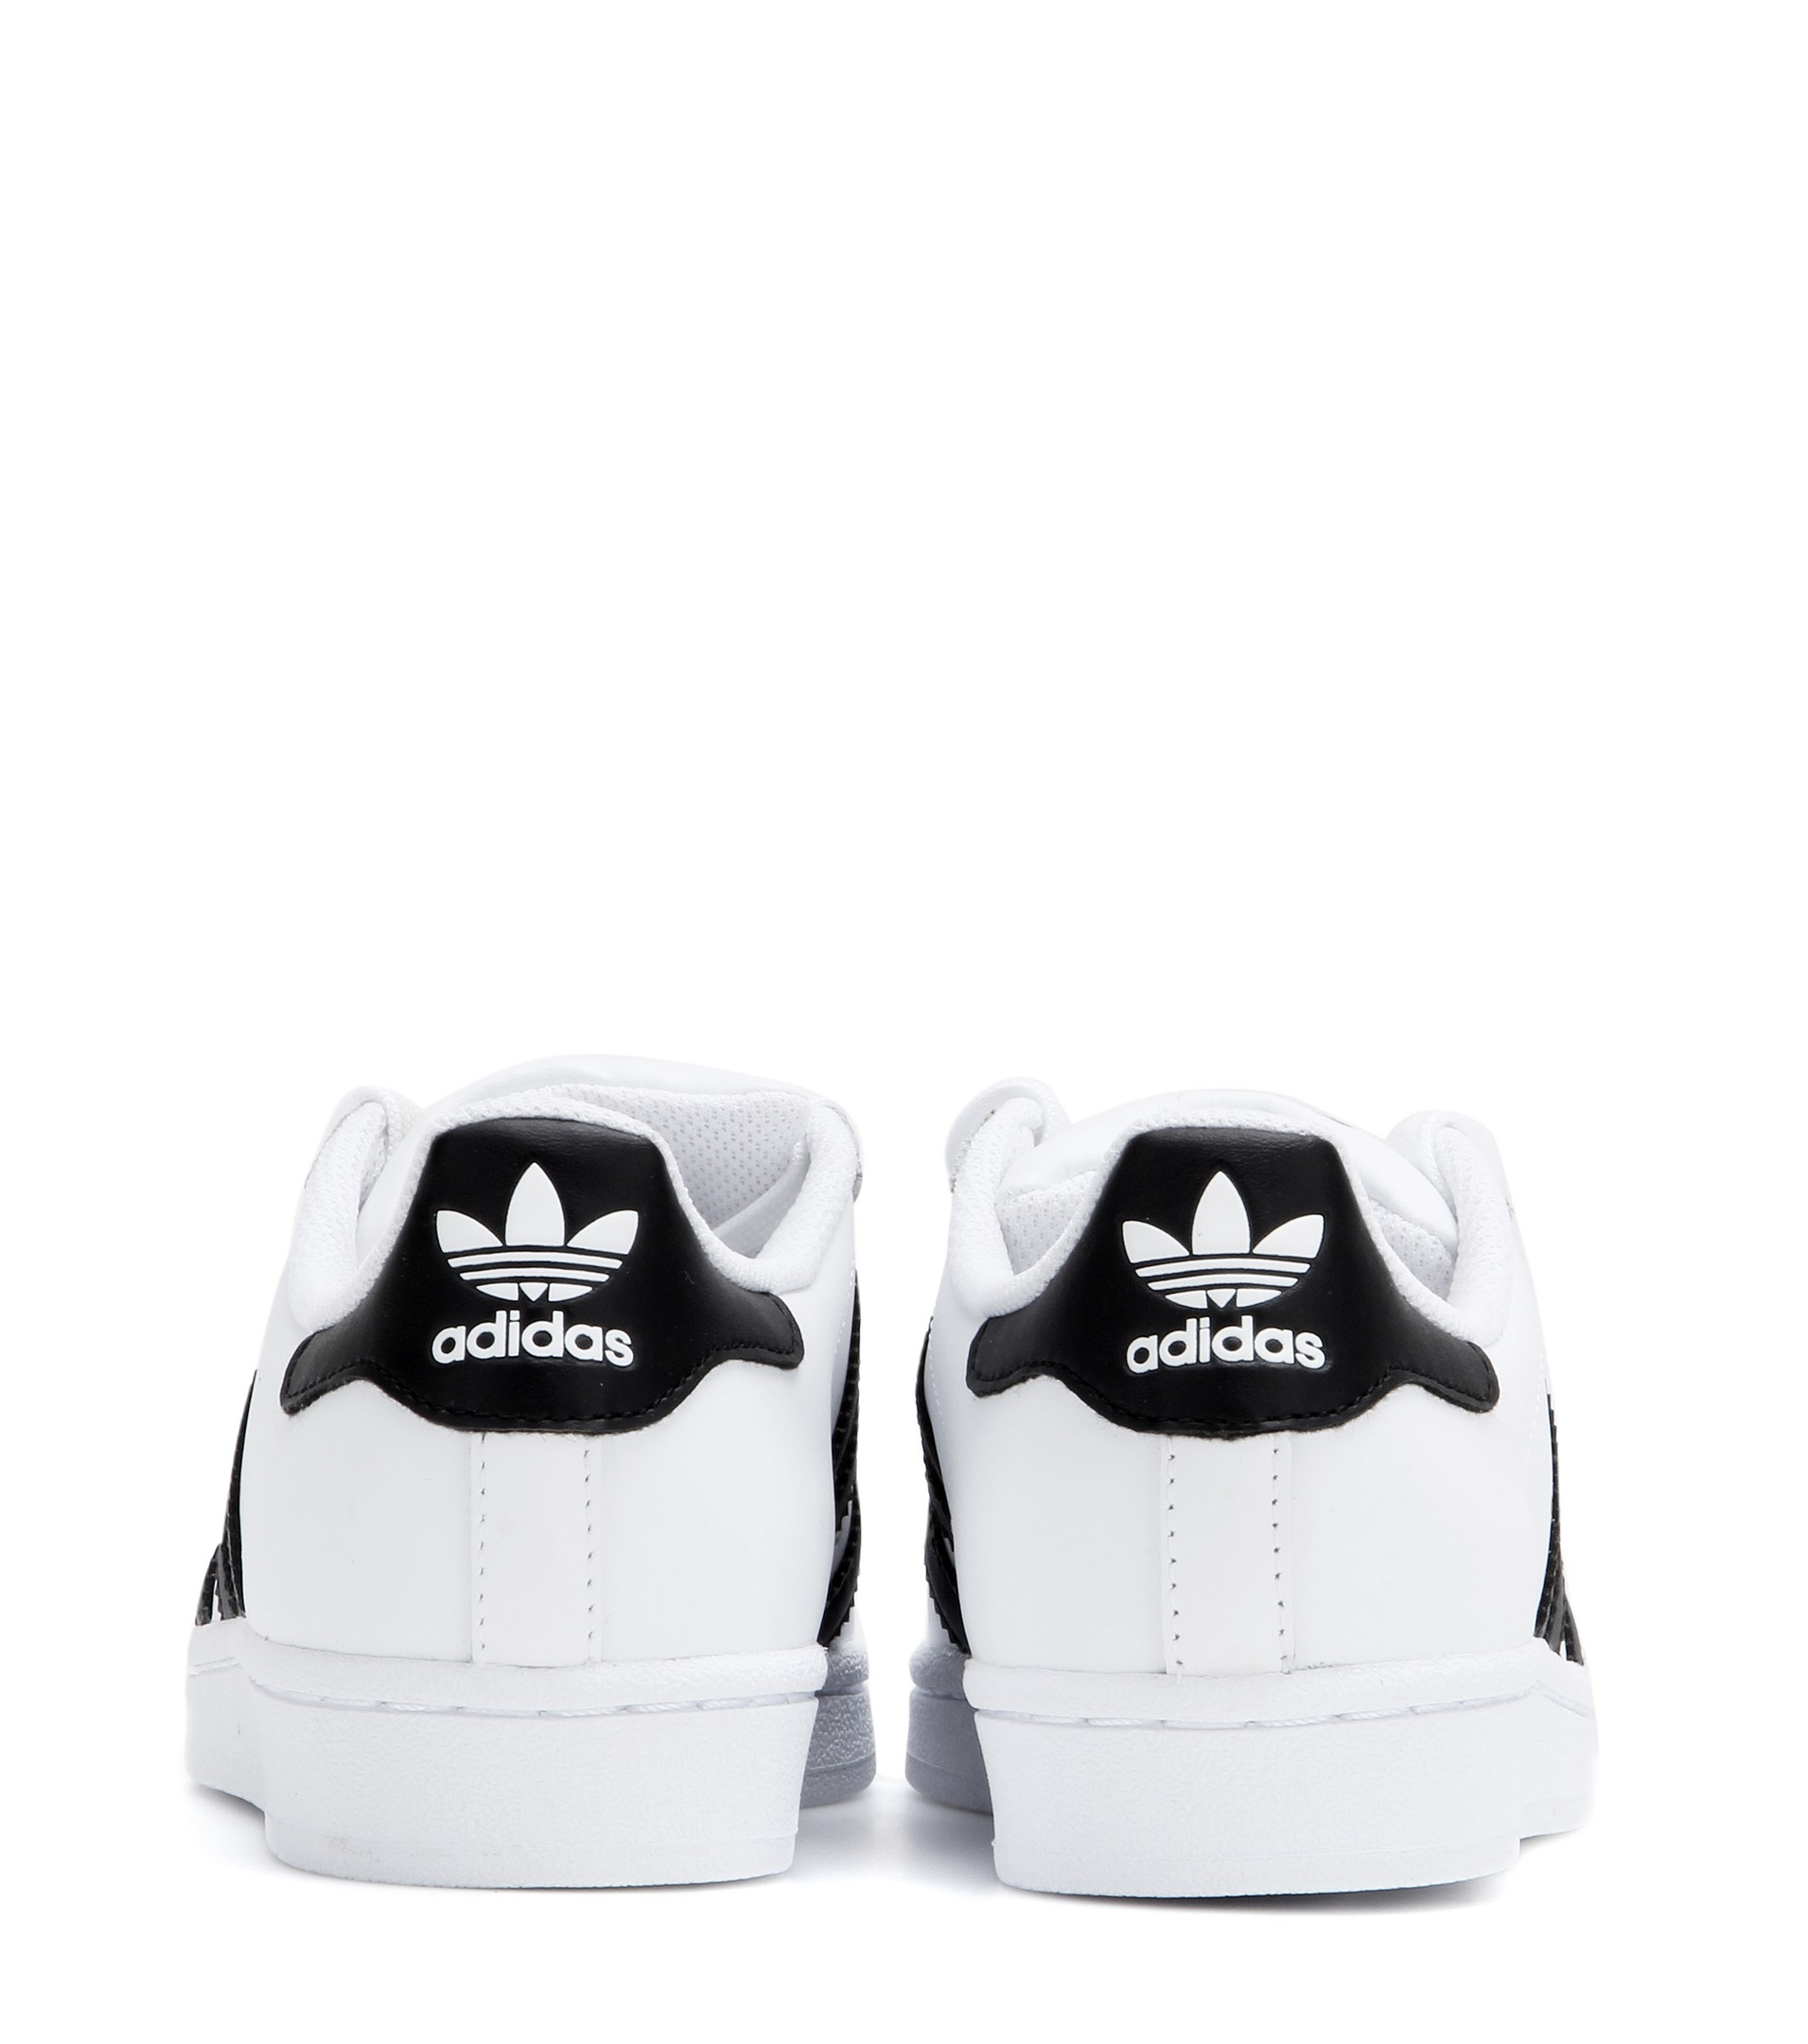 buy online 8052b 0b778 adidas Superstar Leather Sneakers in White - Lyst